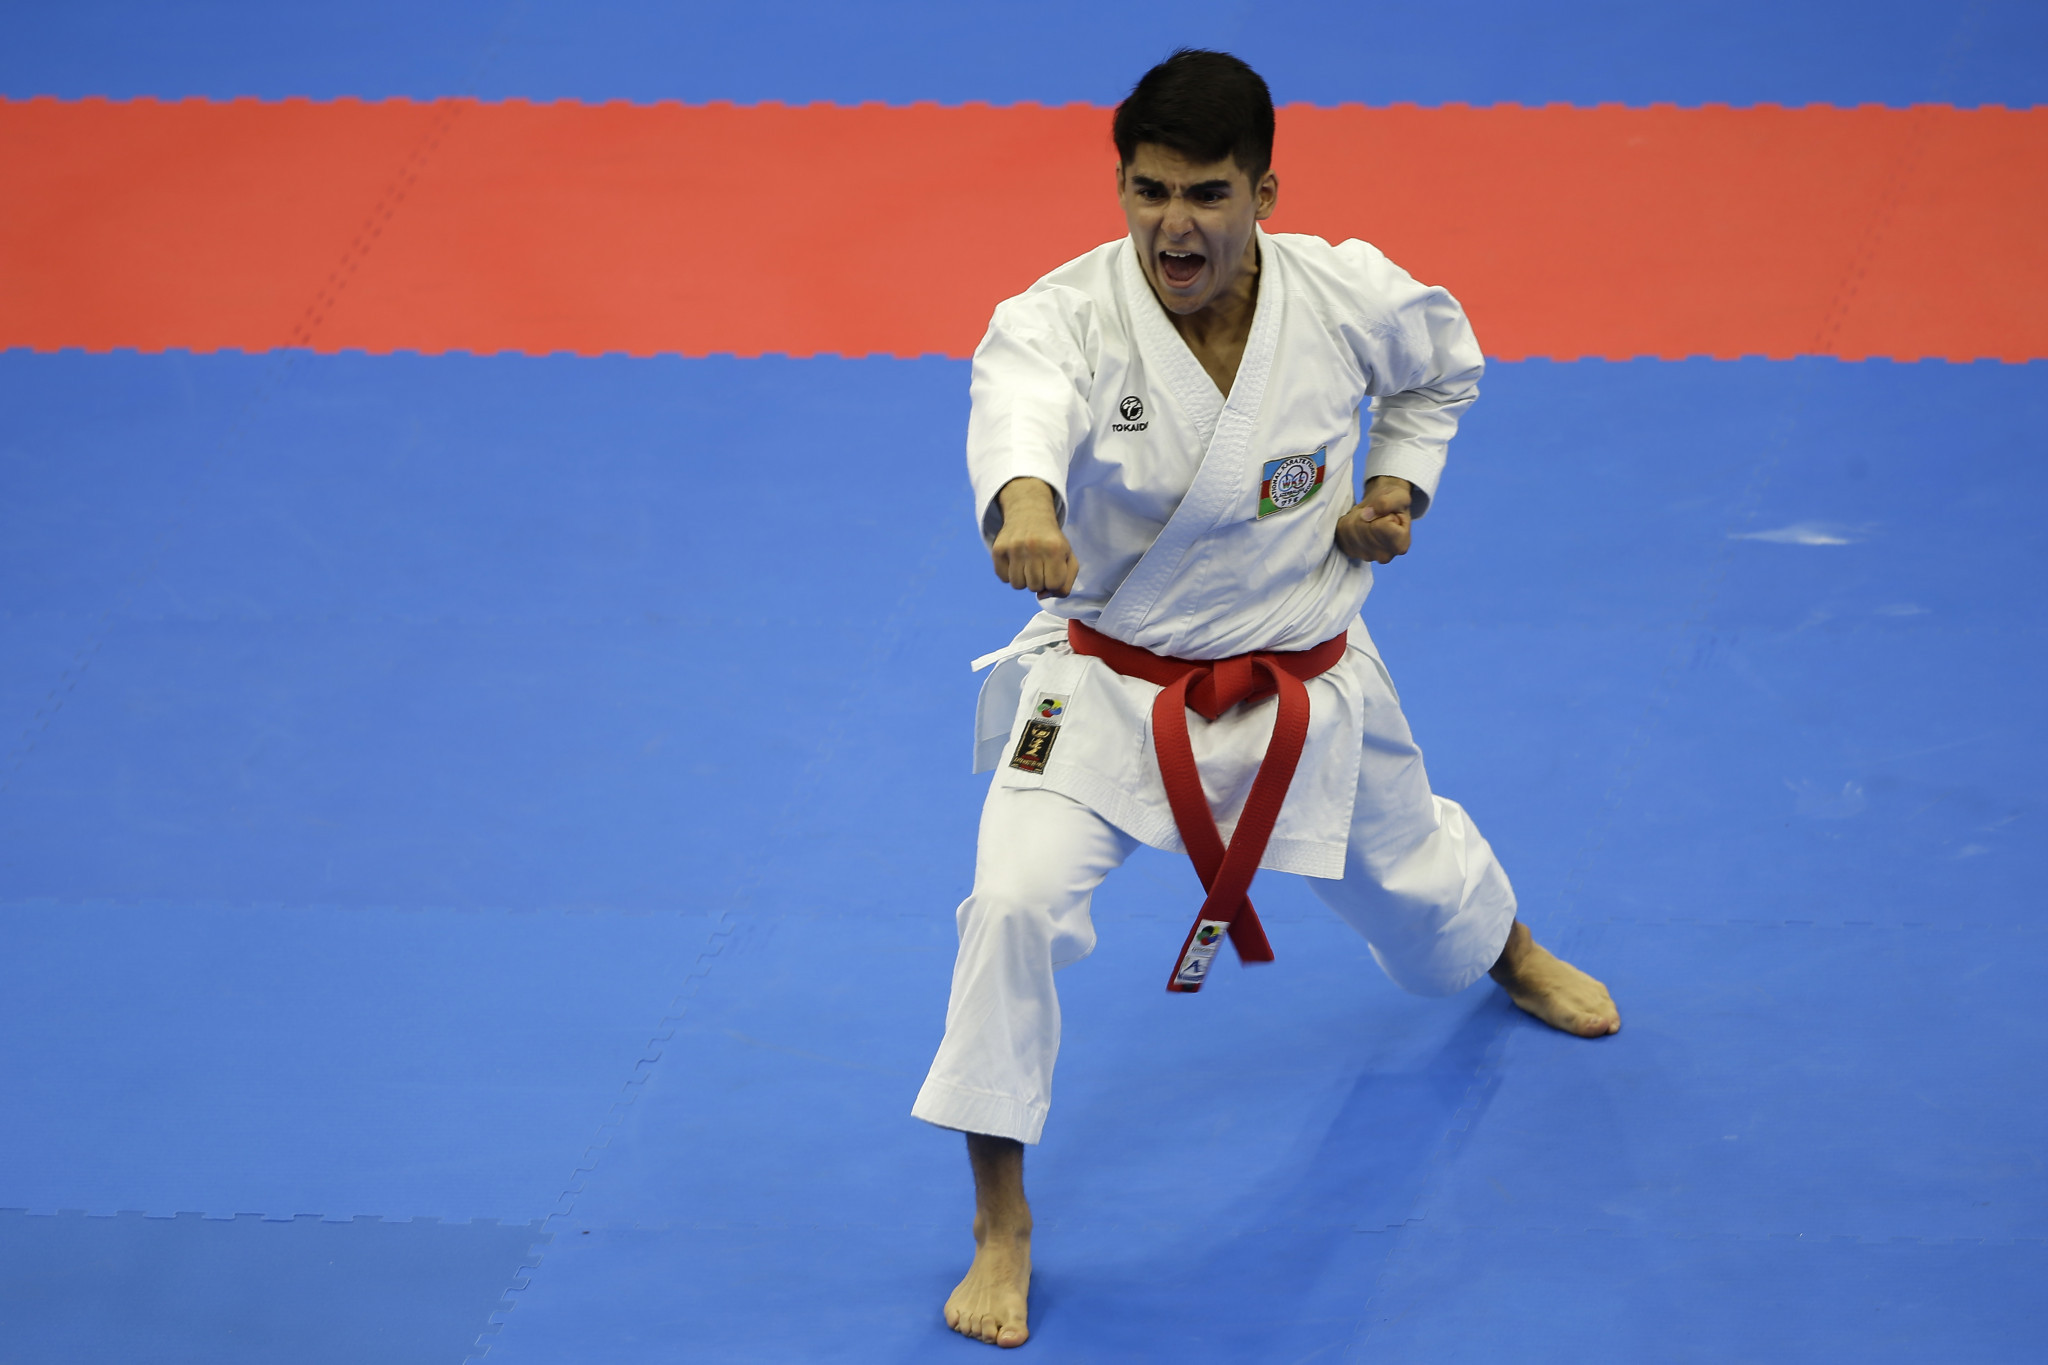 A project to modify kata rules has been ongoing ©Getty Images